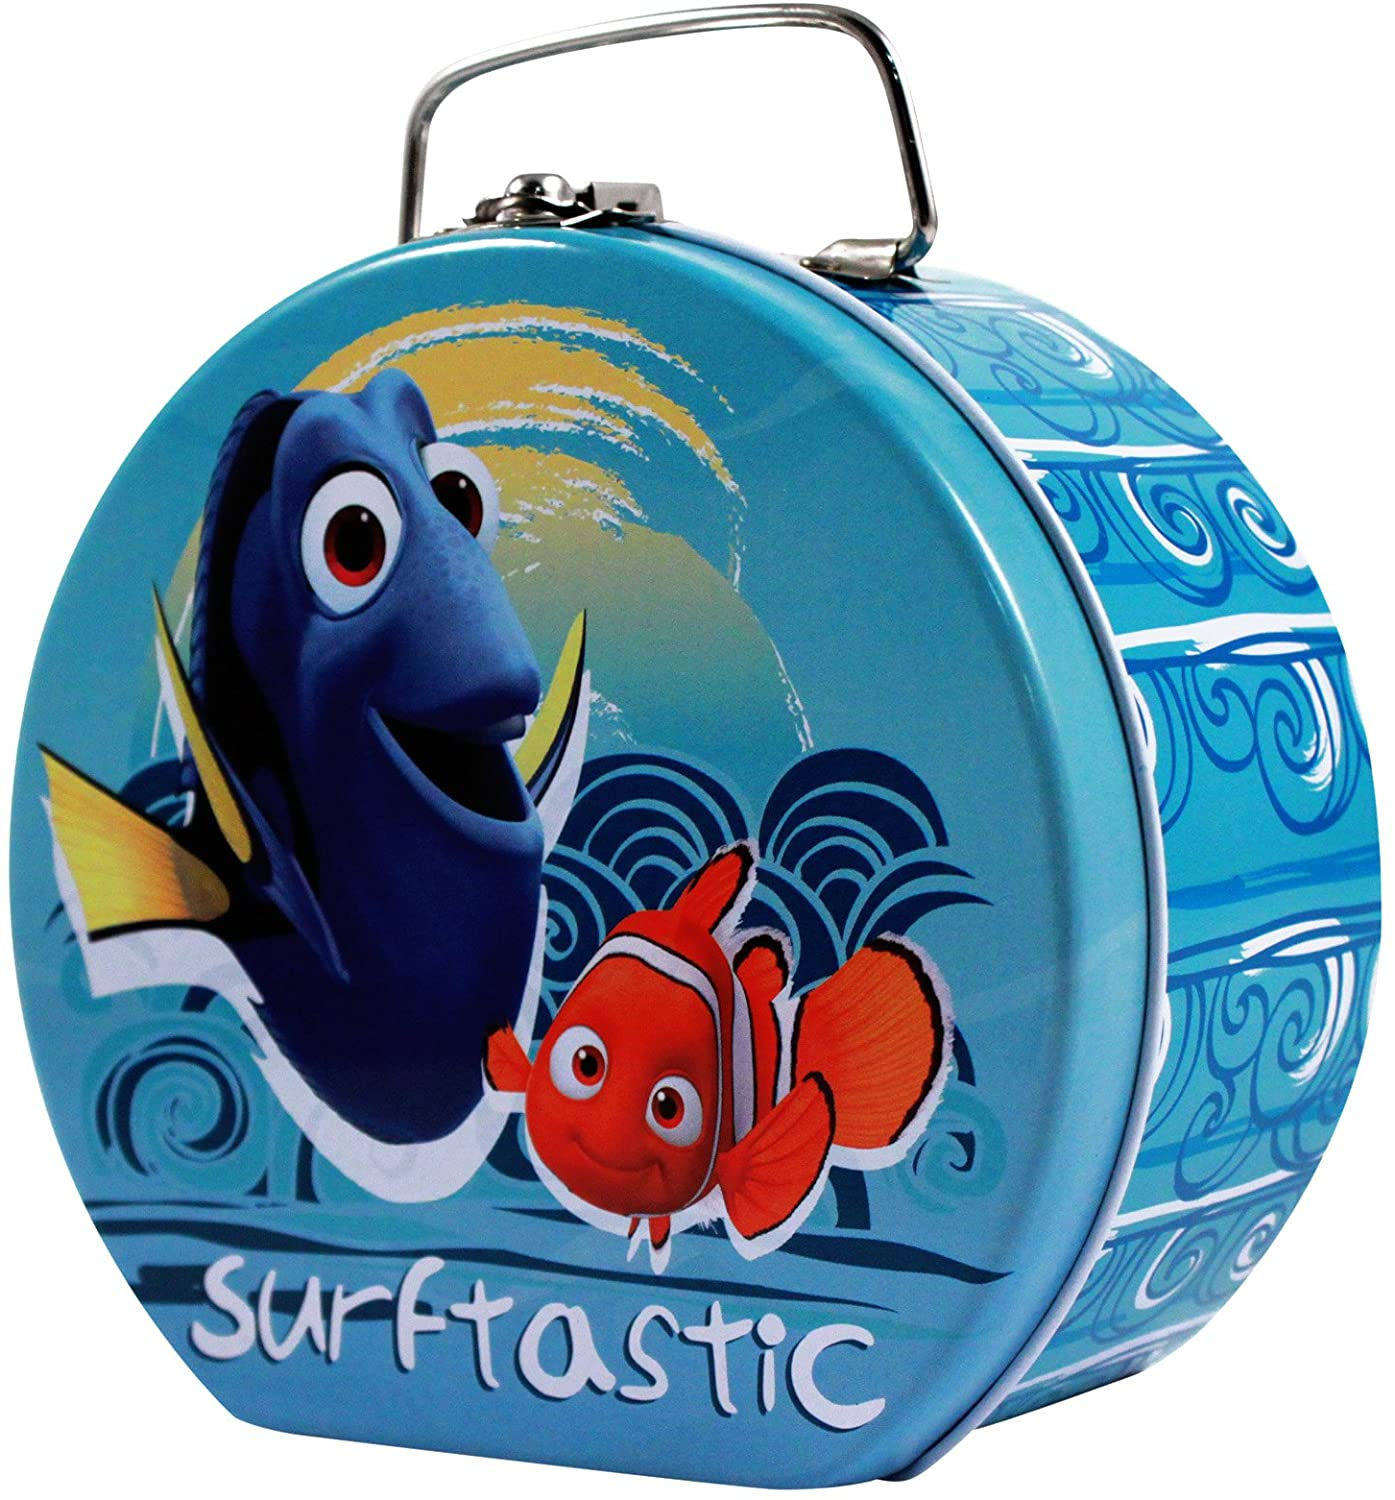 Finding Dory Semi-round Shaped Tin Box With Clasp & handle